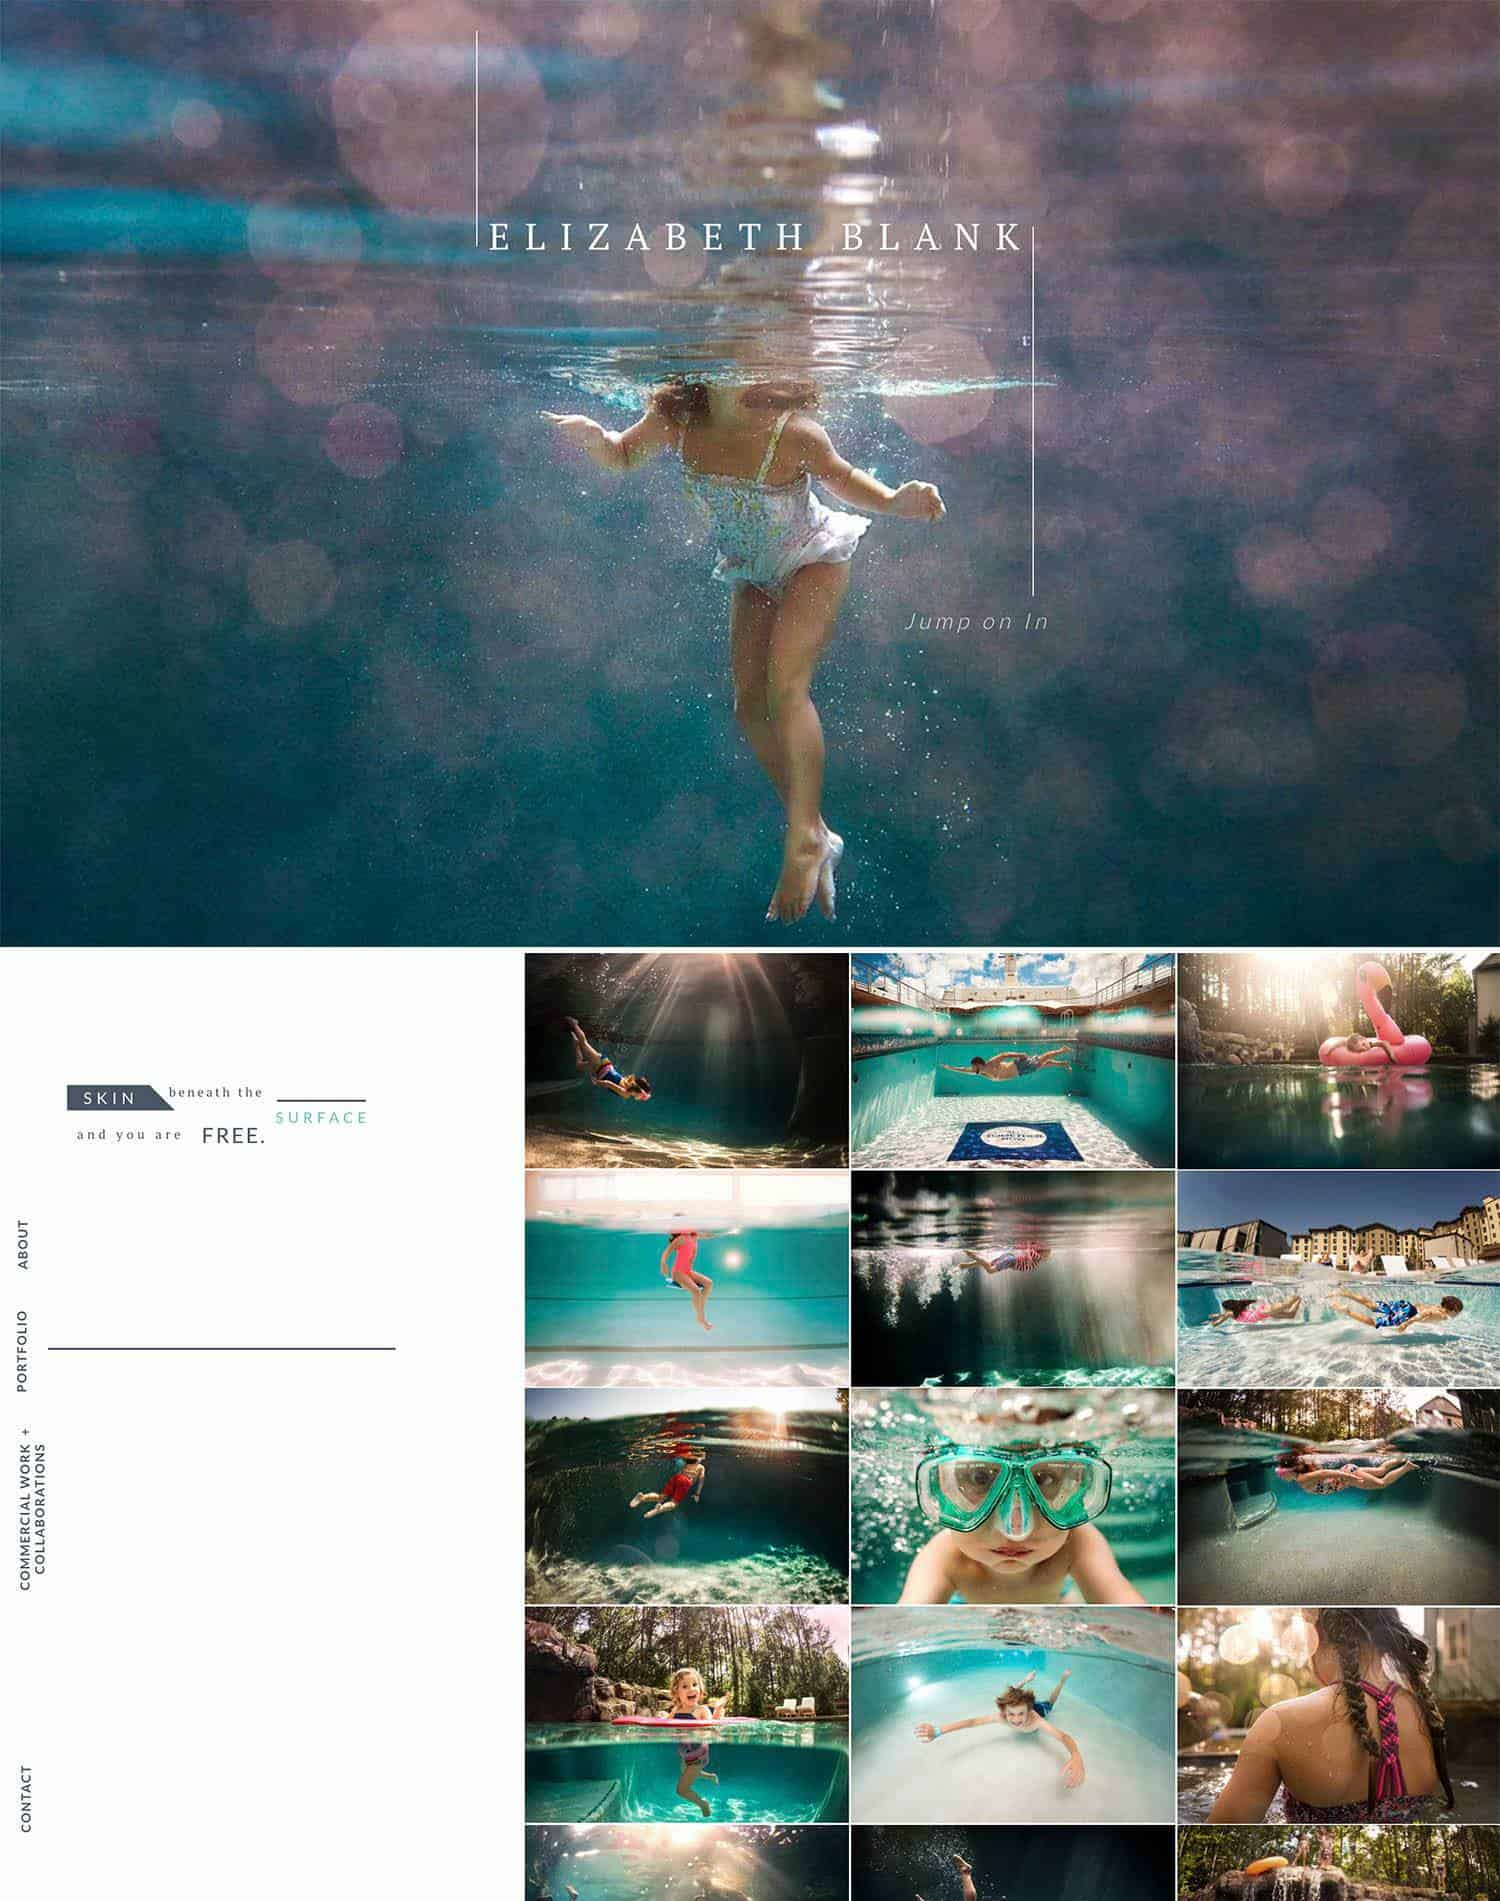 Screenshots of two pages from Elizabeth Blank's underwater photography website